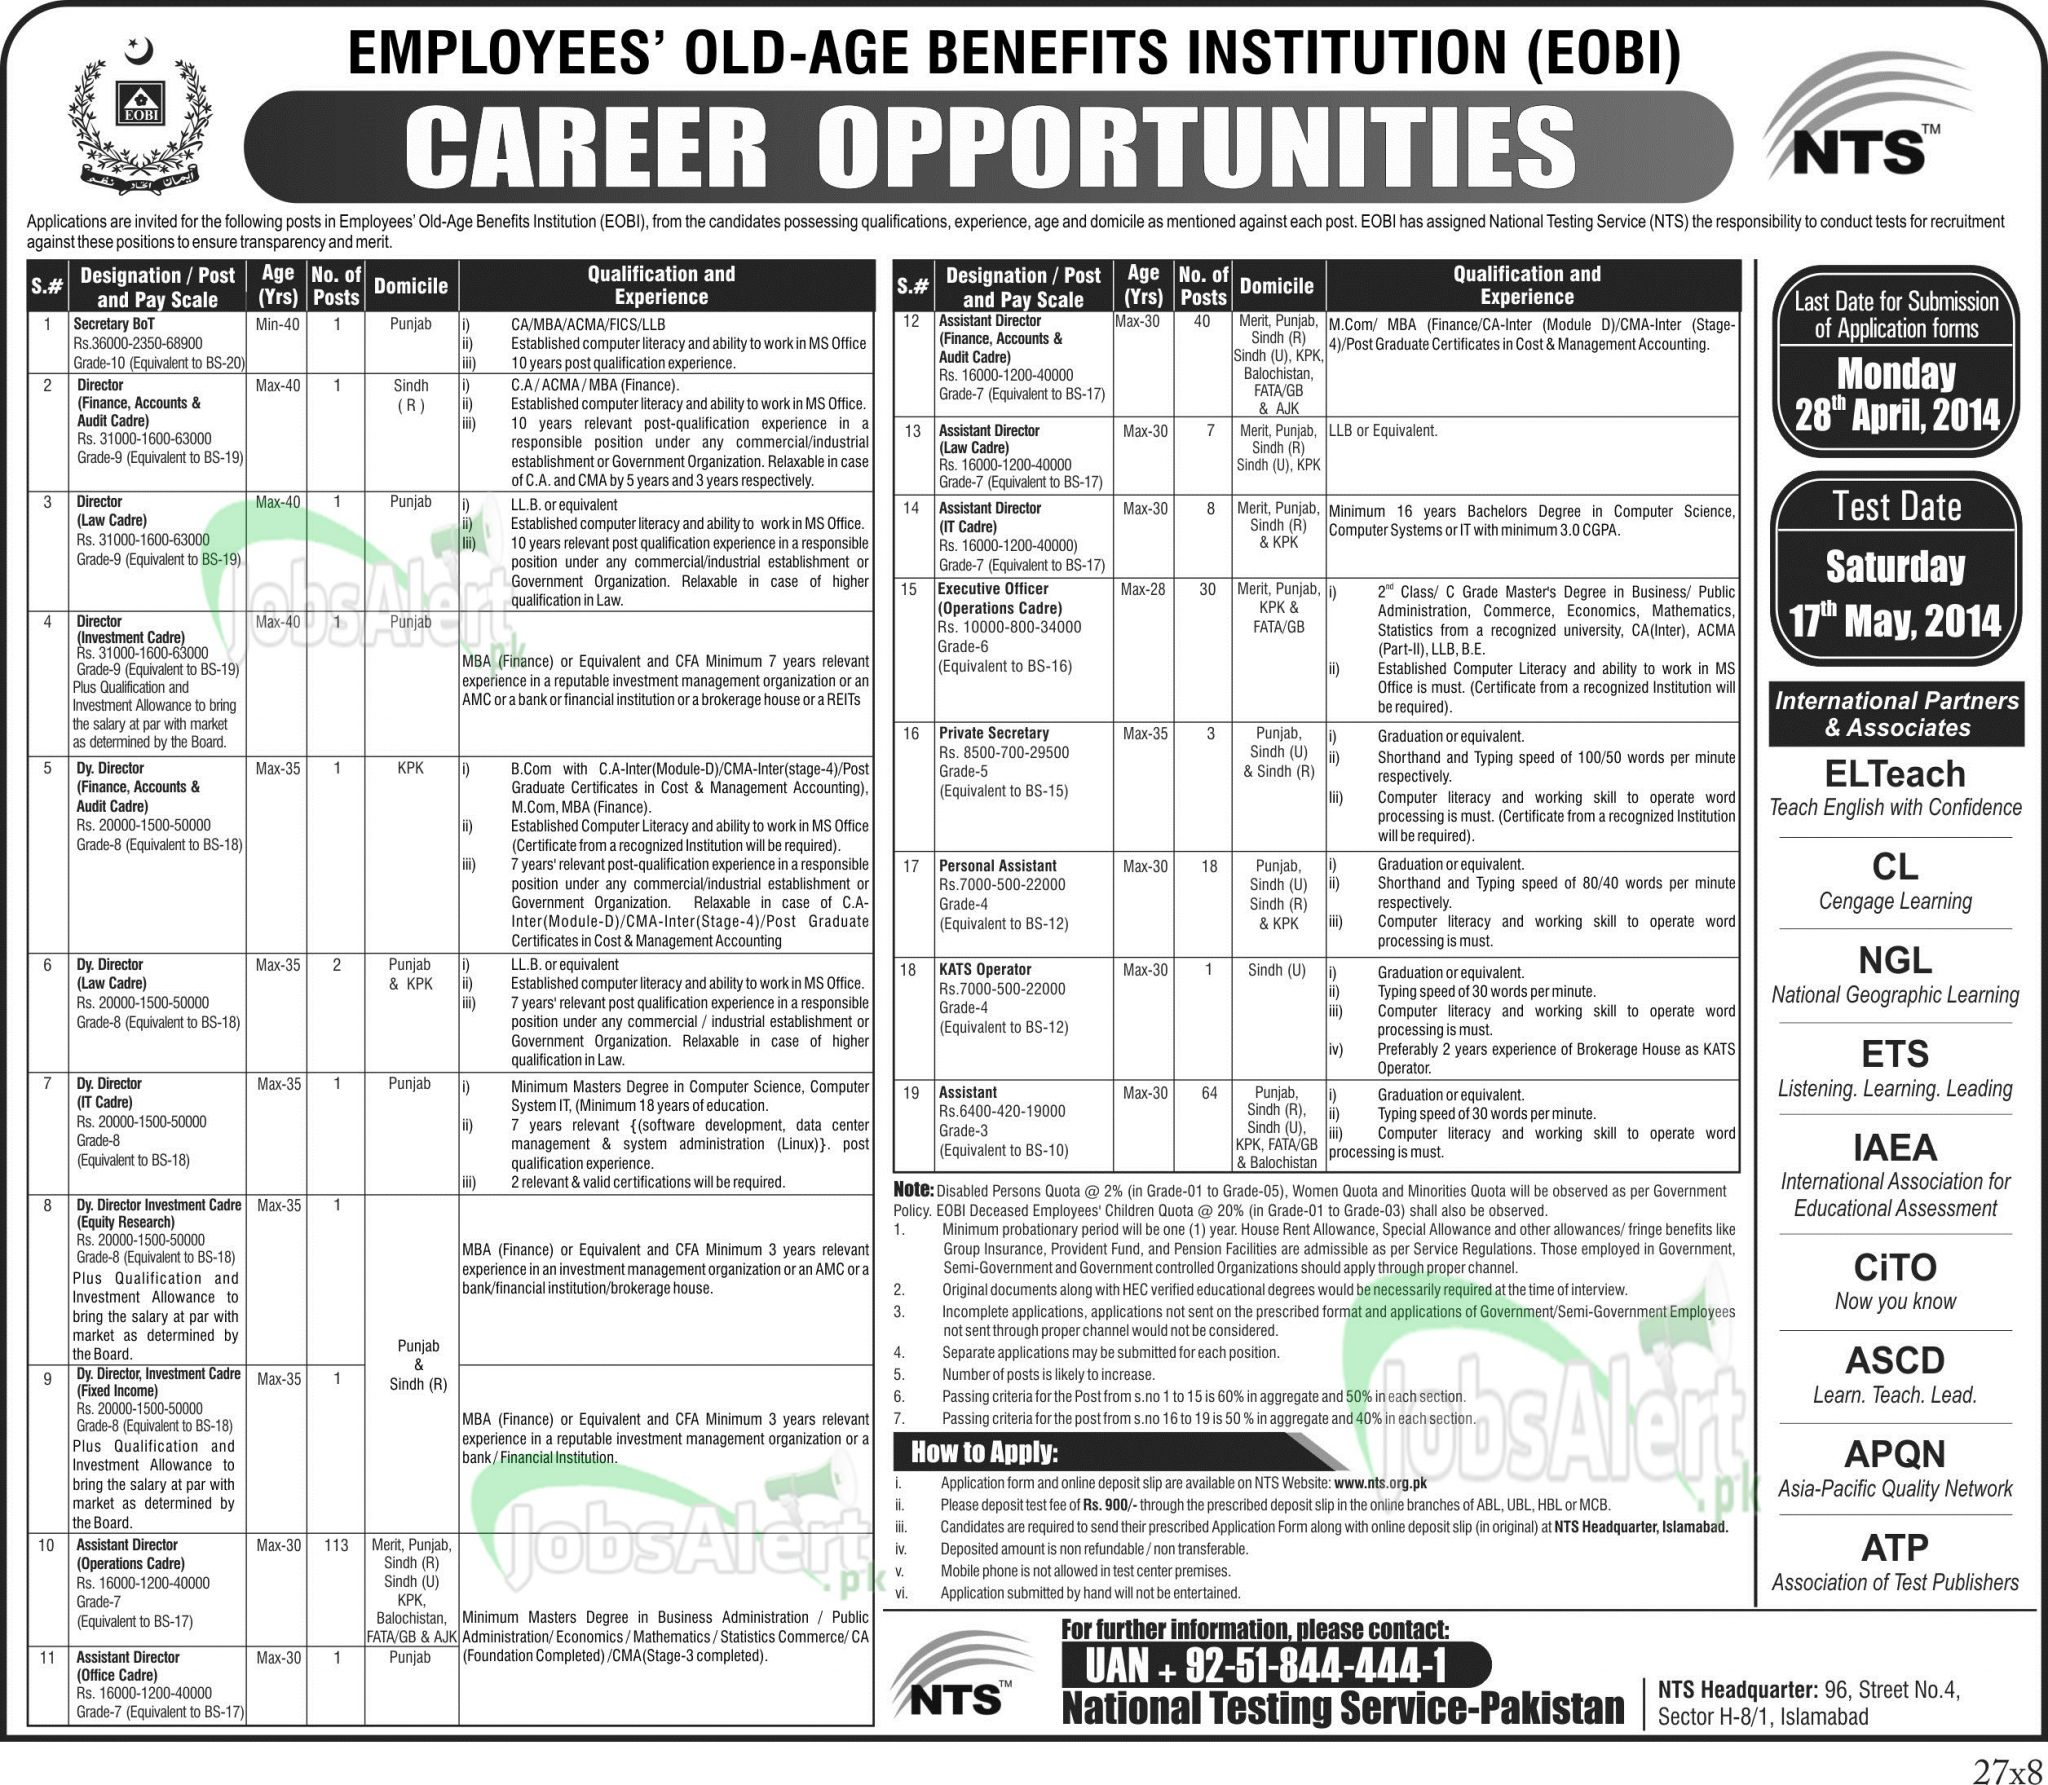 Employees Old Age Benefits Institution (EOBI) Jobs 2014 NTS